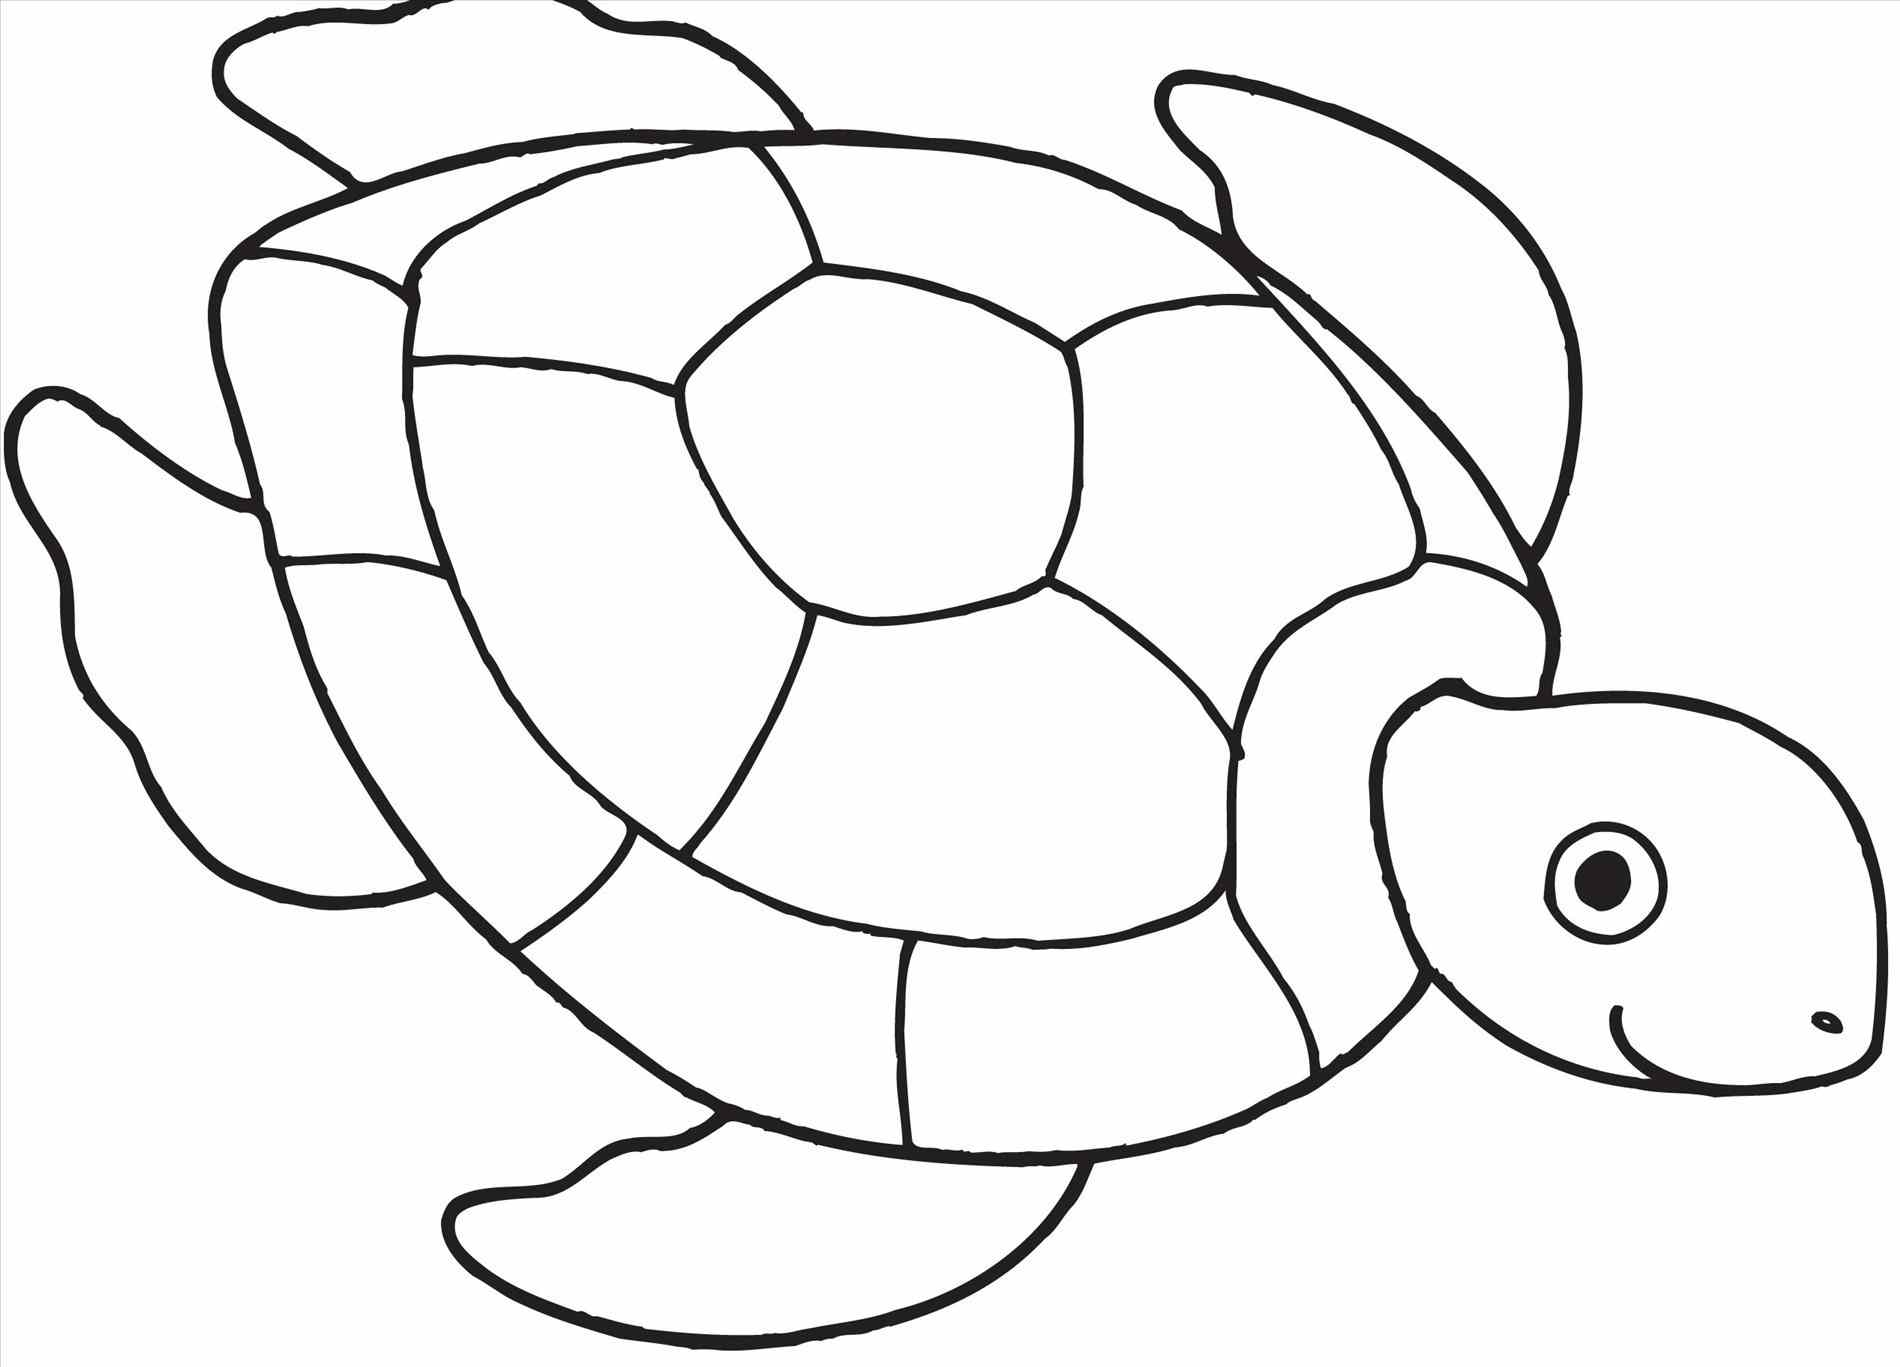 Tortoise clipart coloring page #12